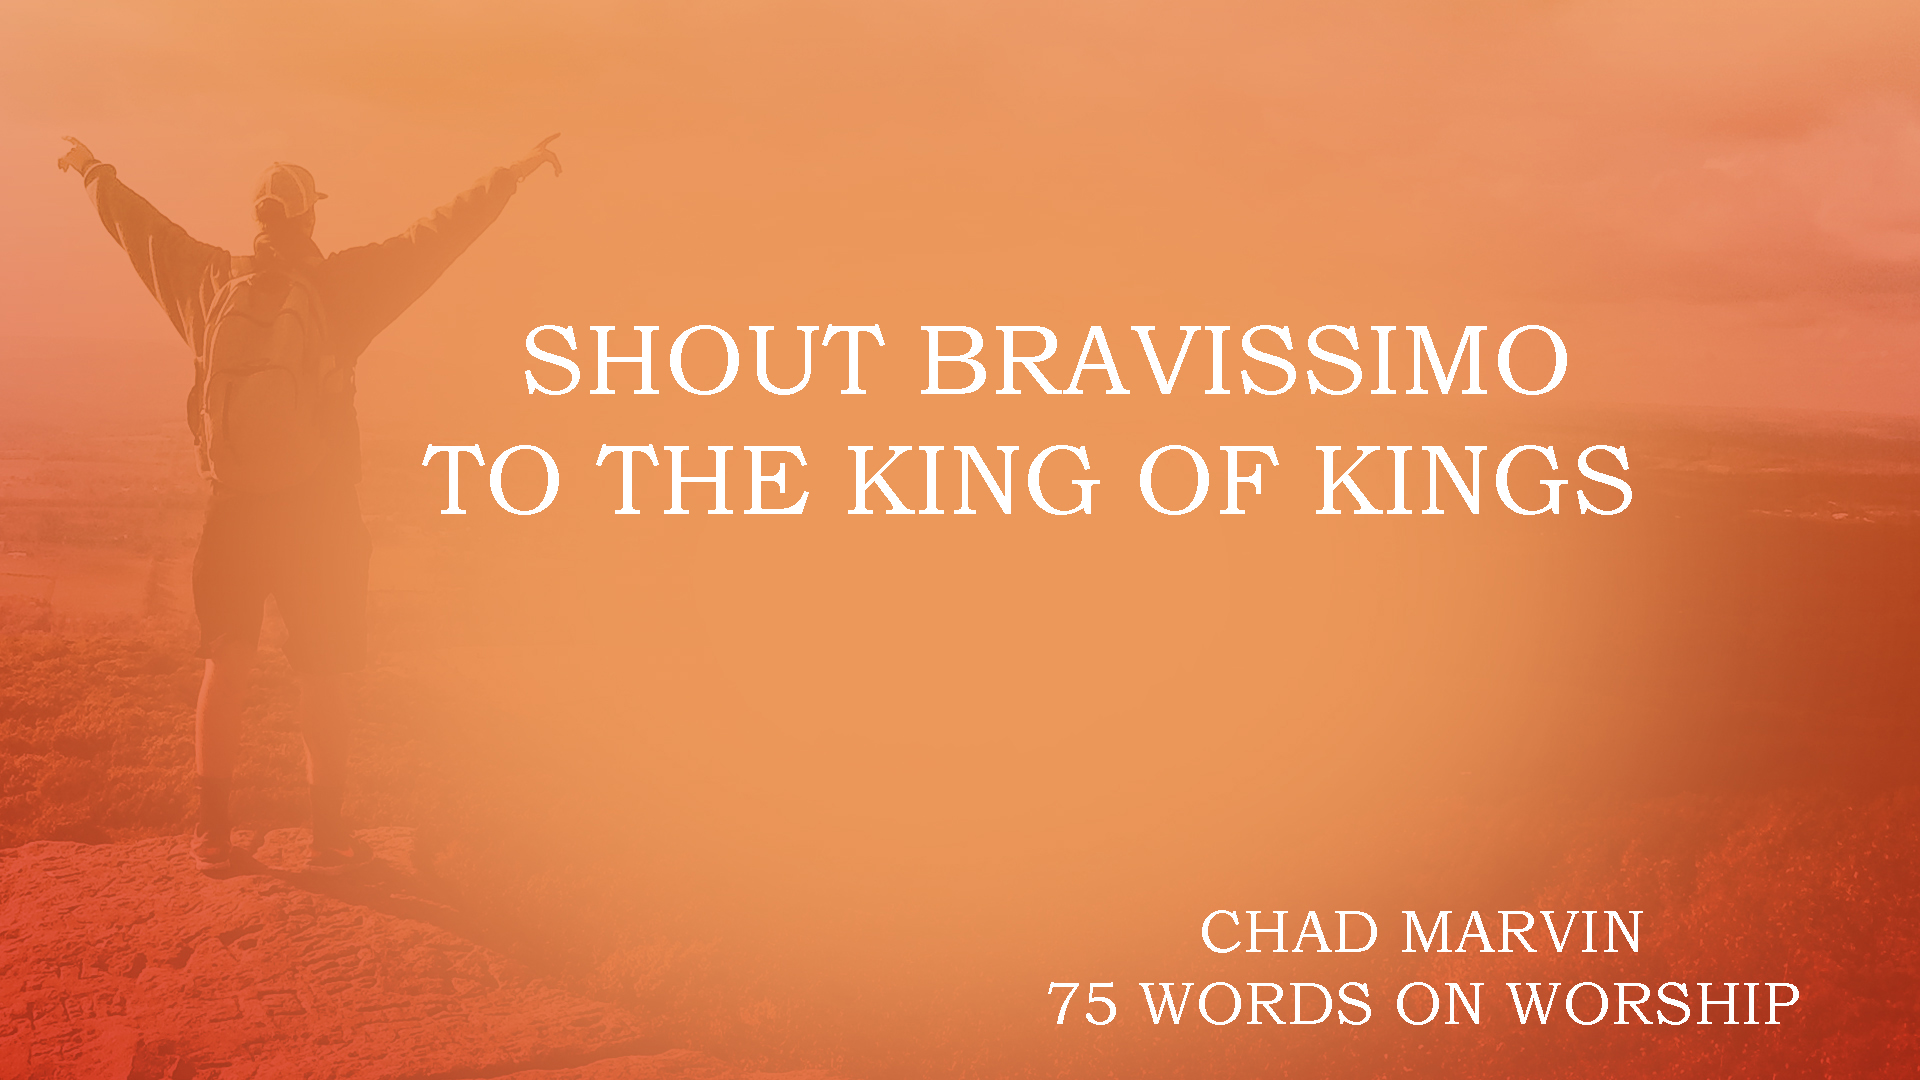 CHAD MARVIN 75 WORDS ON WORSHIP SHOUT BRAVISSIMO